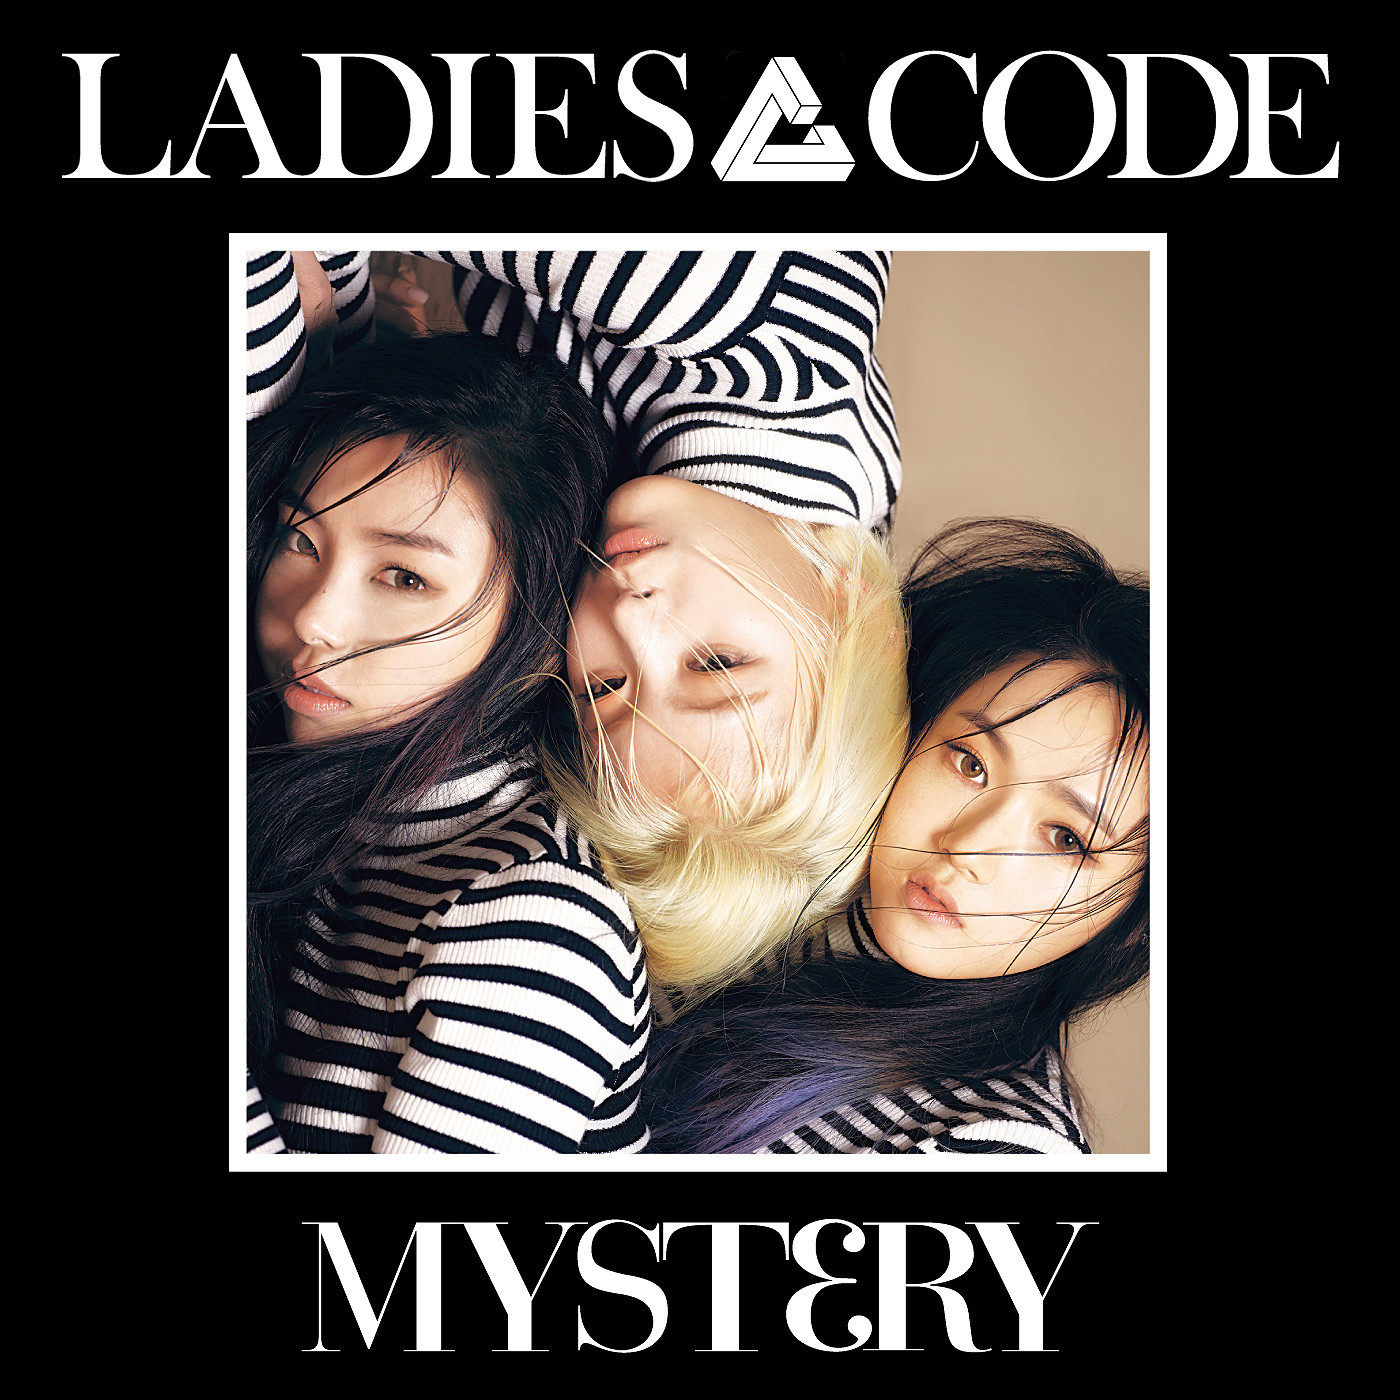 Sofa Easy Lyrics Korean Myuzicstylez Ladies Code Galaxy Easy Lyrics Eng